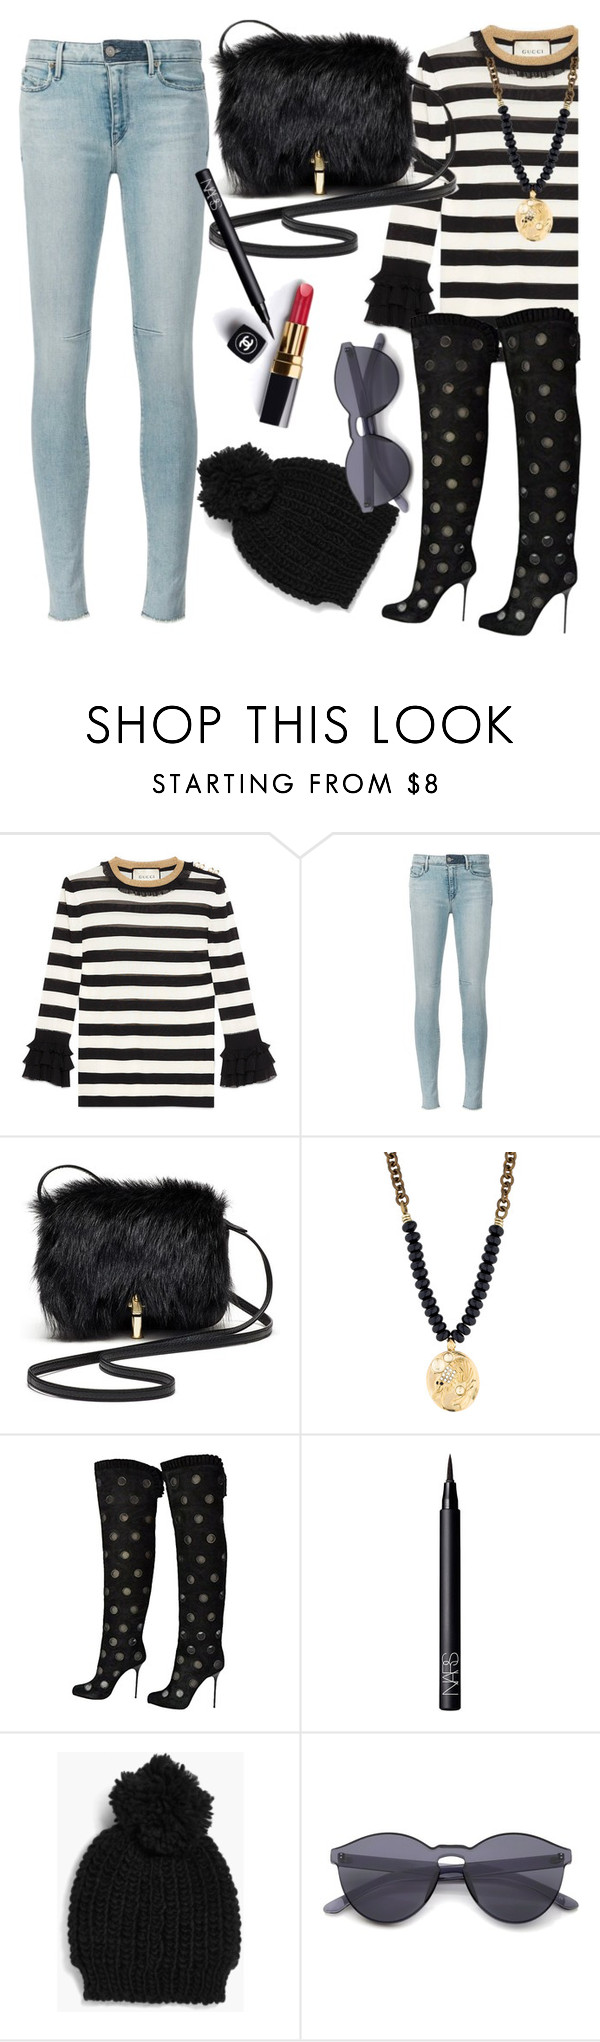 """Cry Like A Baby"" by chelsofly ❤ liked on Polyvore featuring Chanel, Gucci, RtA, Elizabeth and James, Lulu Frost, Sergio Rossi, NARS Cosmetics, Boohoo and blackshoes"